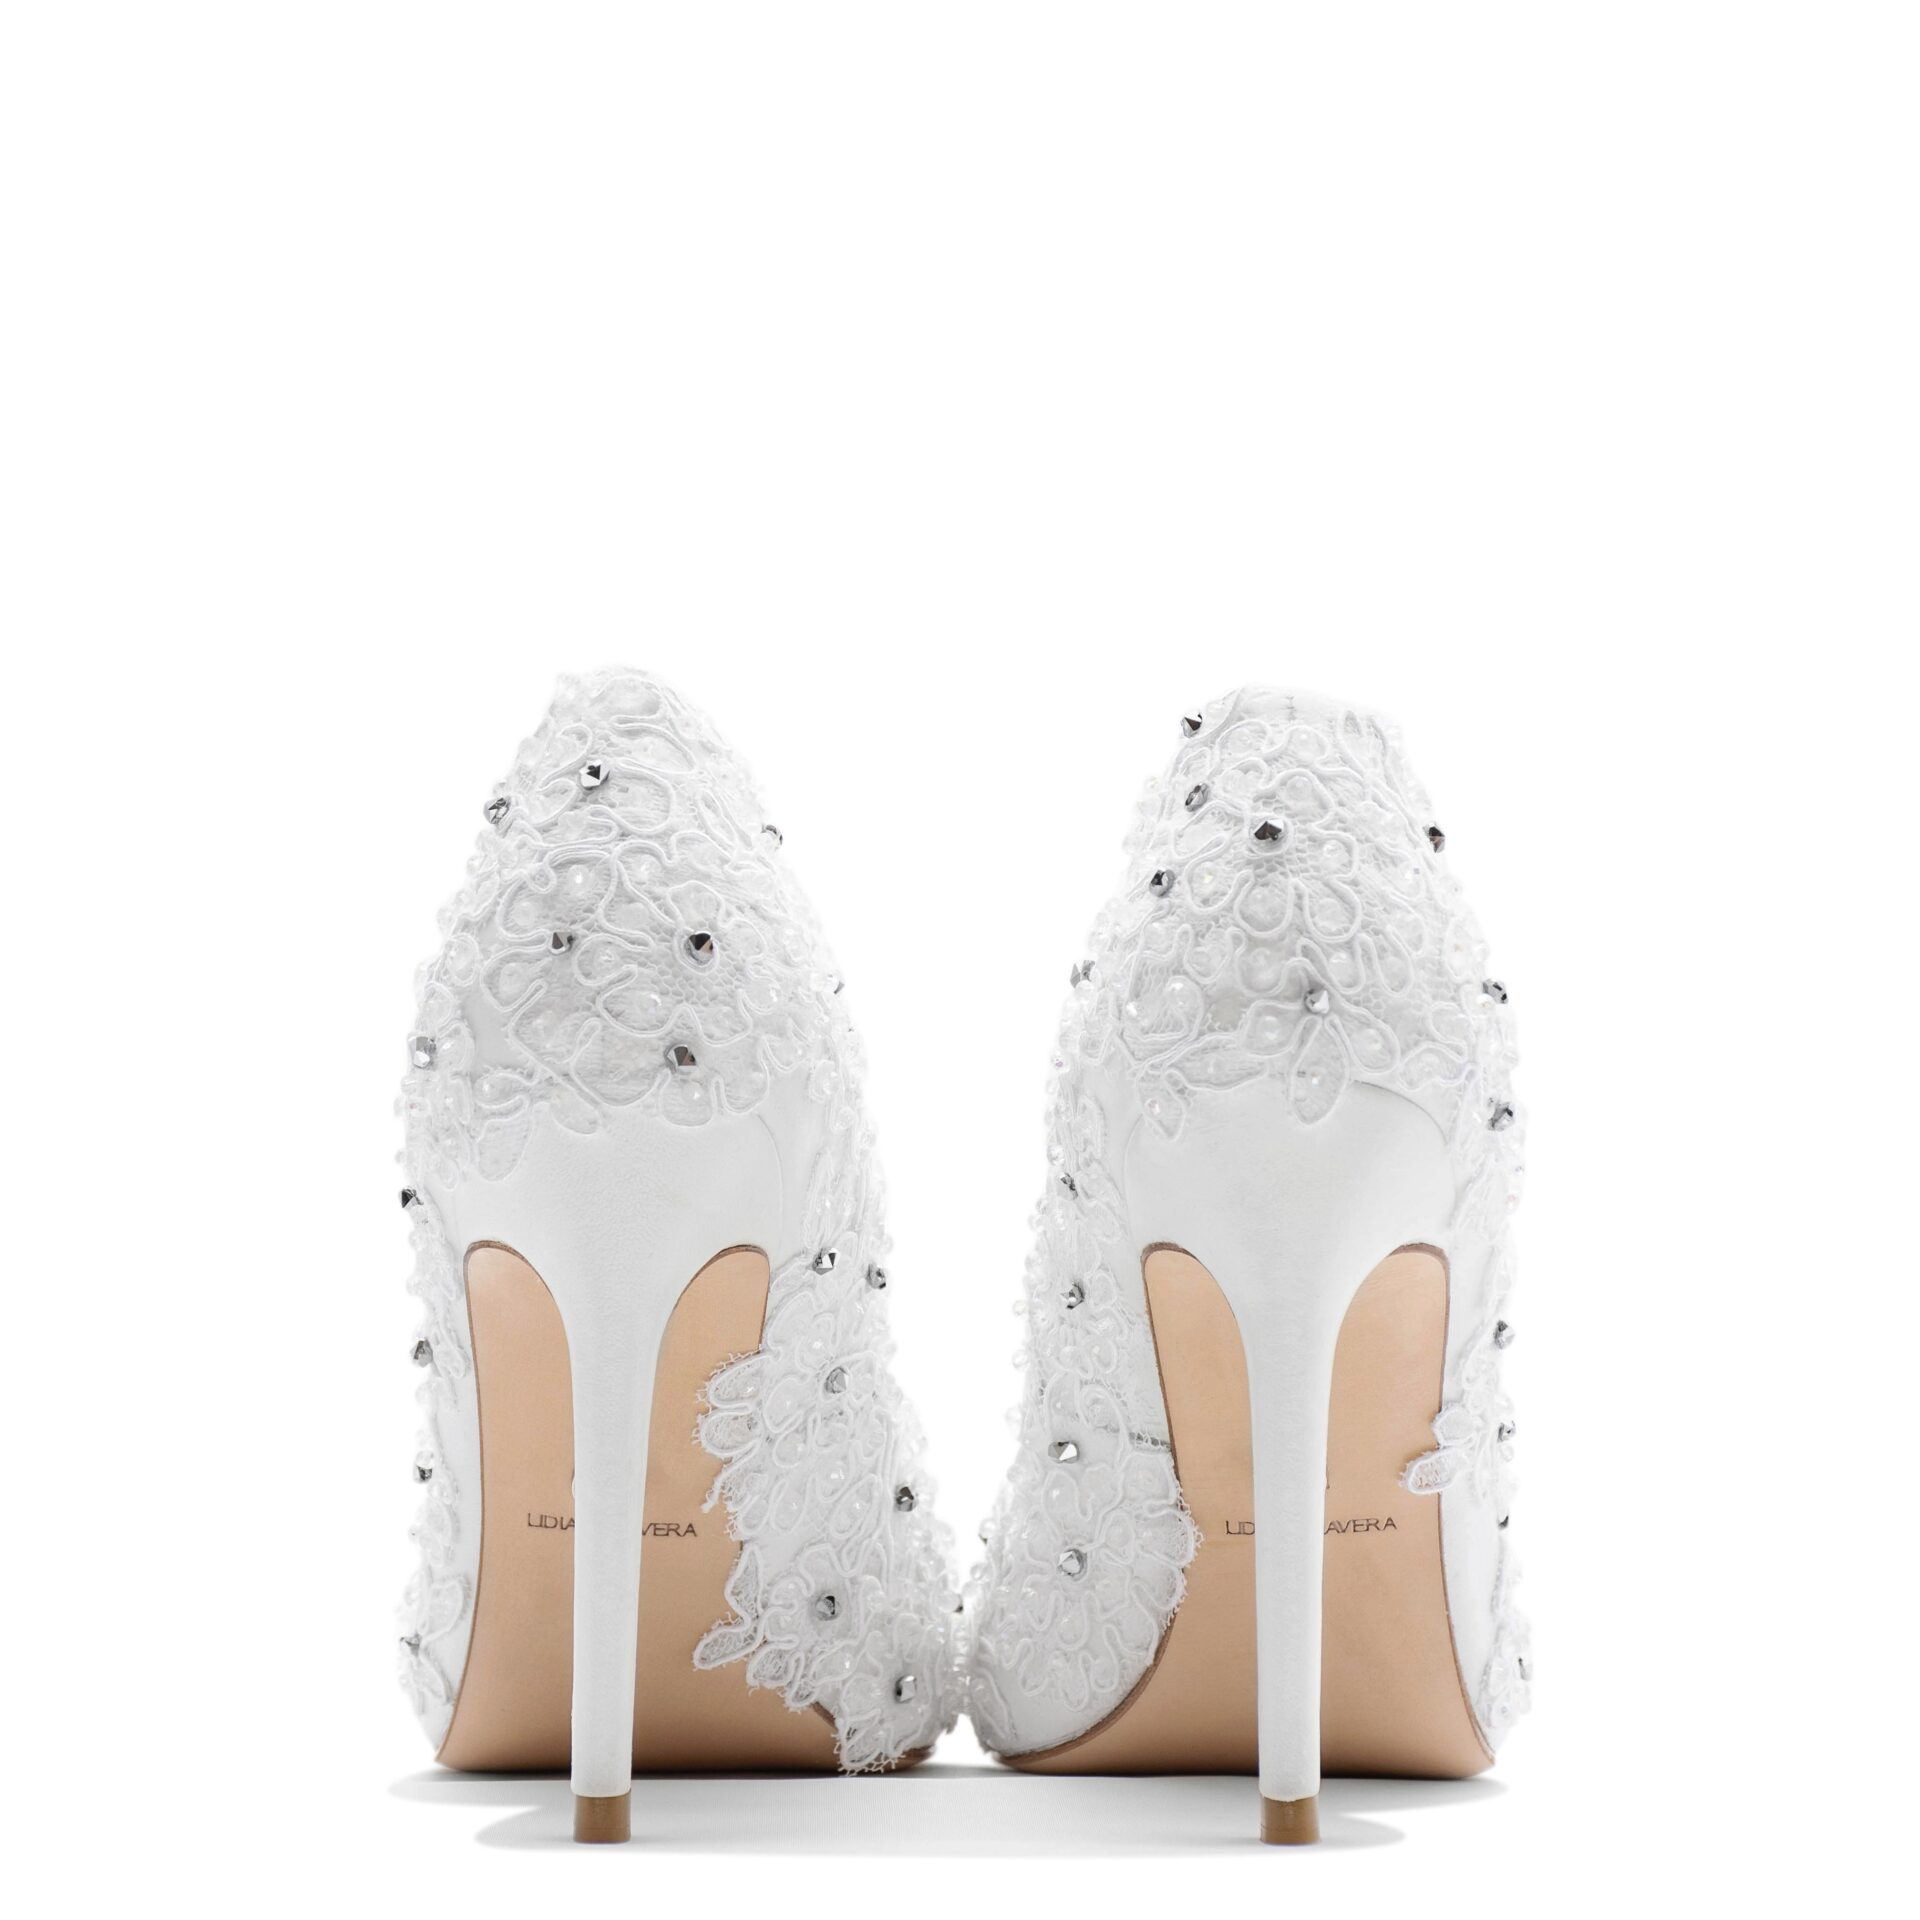 Bridal pointed toe pump with lace & crystals